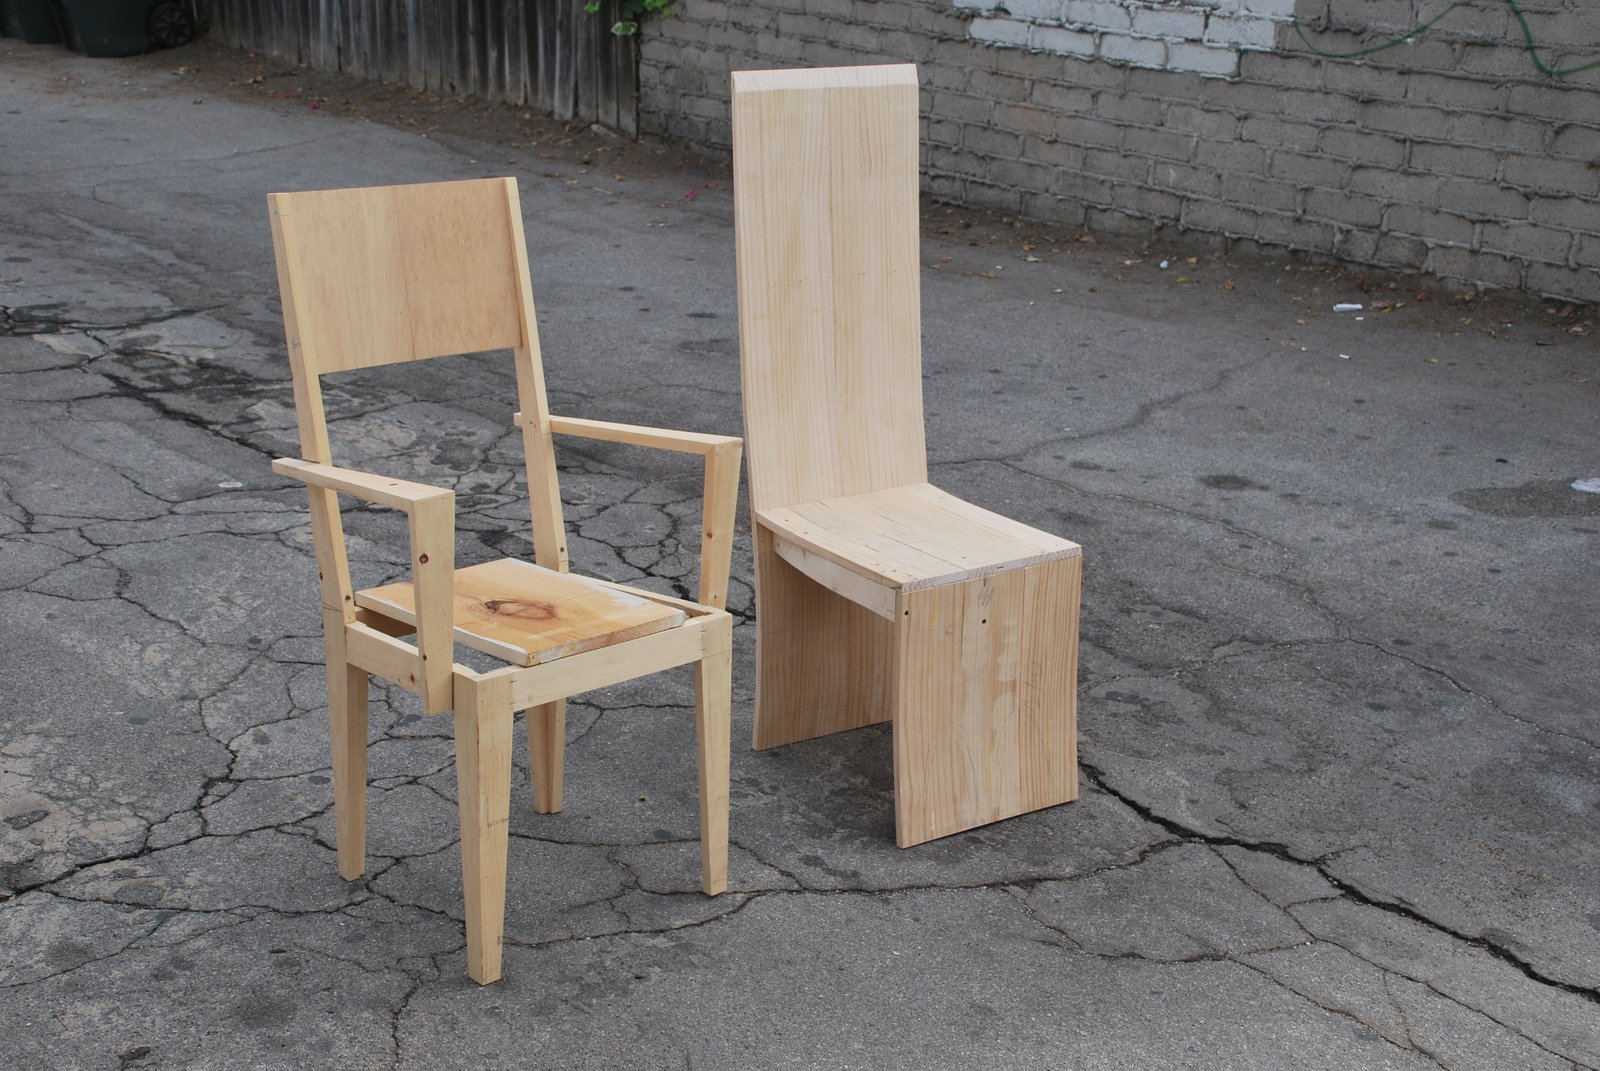 """When we delivered [the table], my dad and I stood on top of the table to show him how strong it was. [The client] was so impressed and asked us to design chairs to go with it,"""" Sevak says. The project, dubbed """"Five Chairs Times Two"""" are still in progress.  Search """"ton chair 77"""" from Profile: Karabachian Design Office"""